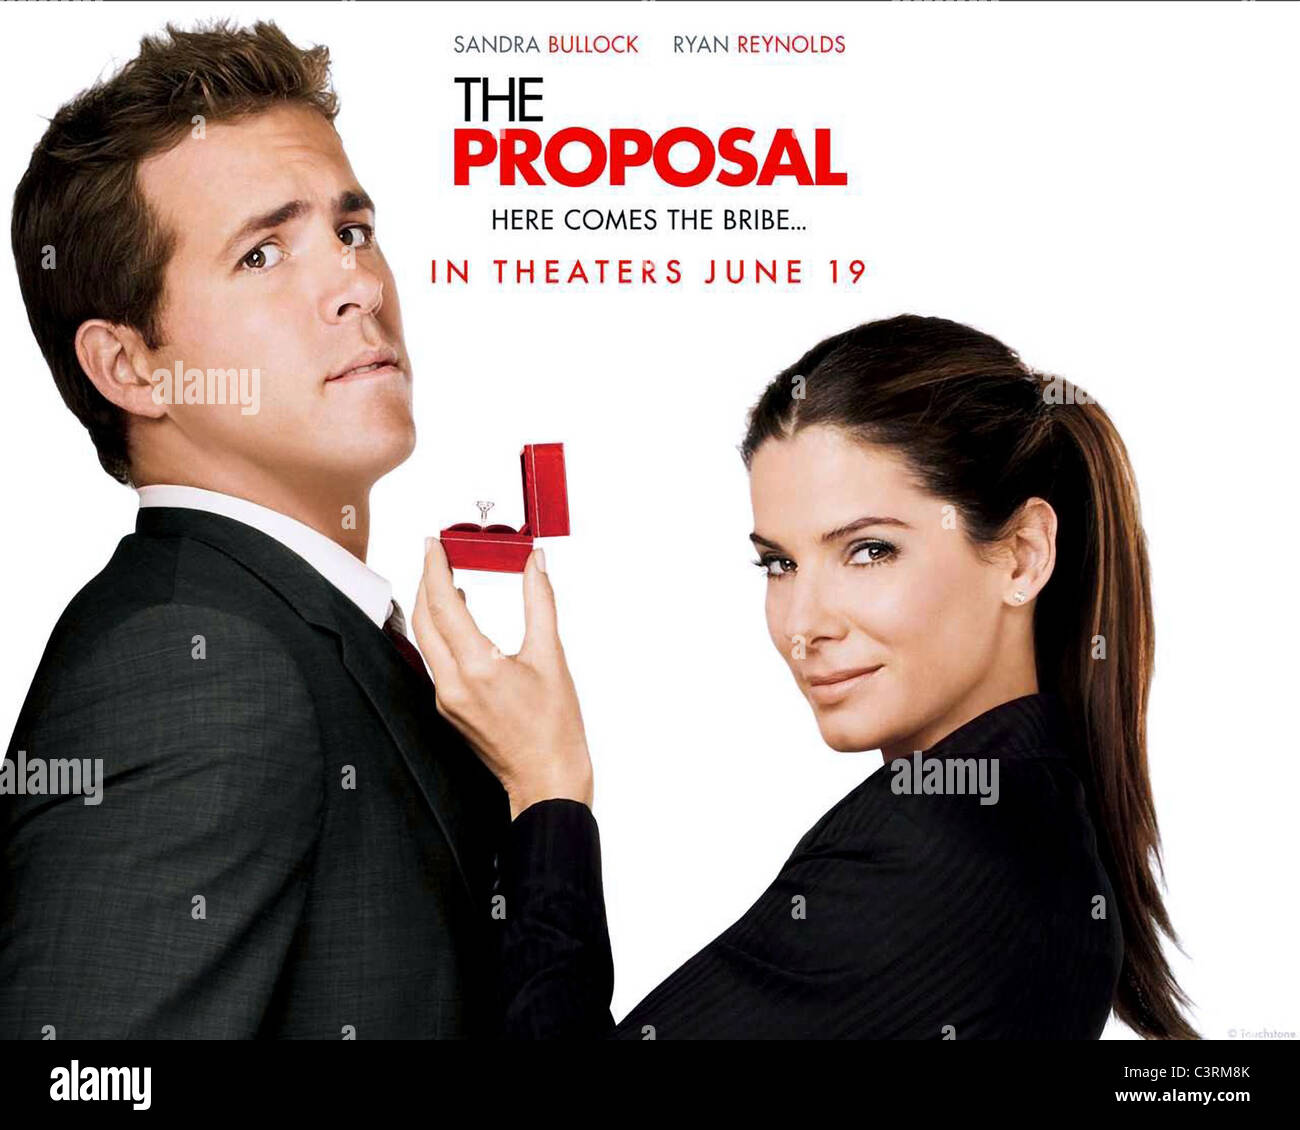 Movie The Proposal: RYAN REYNOLDS & SANDRA BULLOCK POSTER THE PROPOSAL (2009